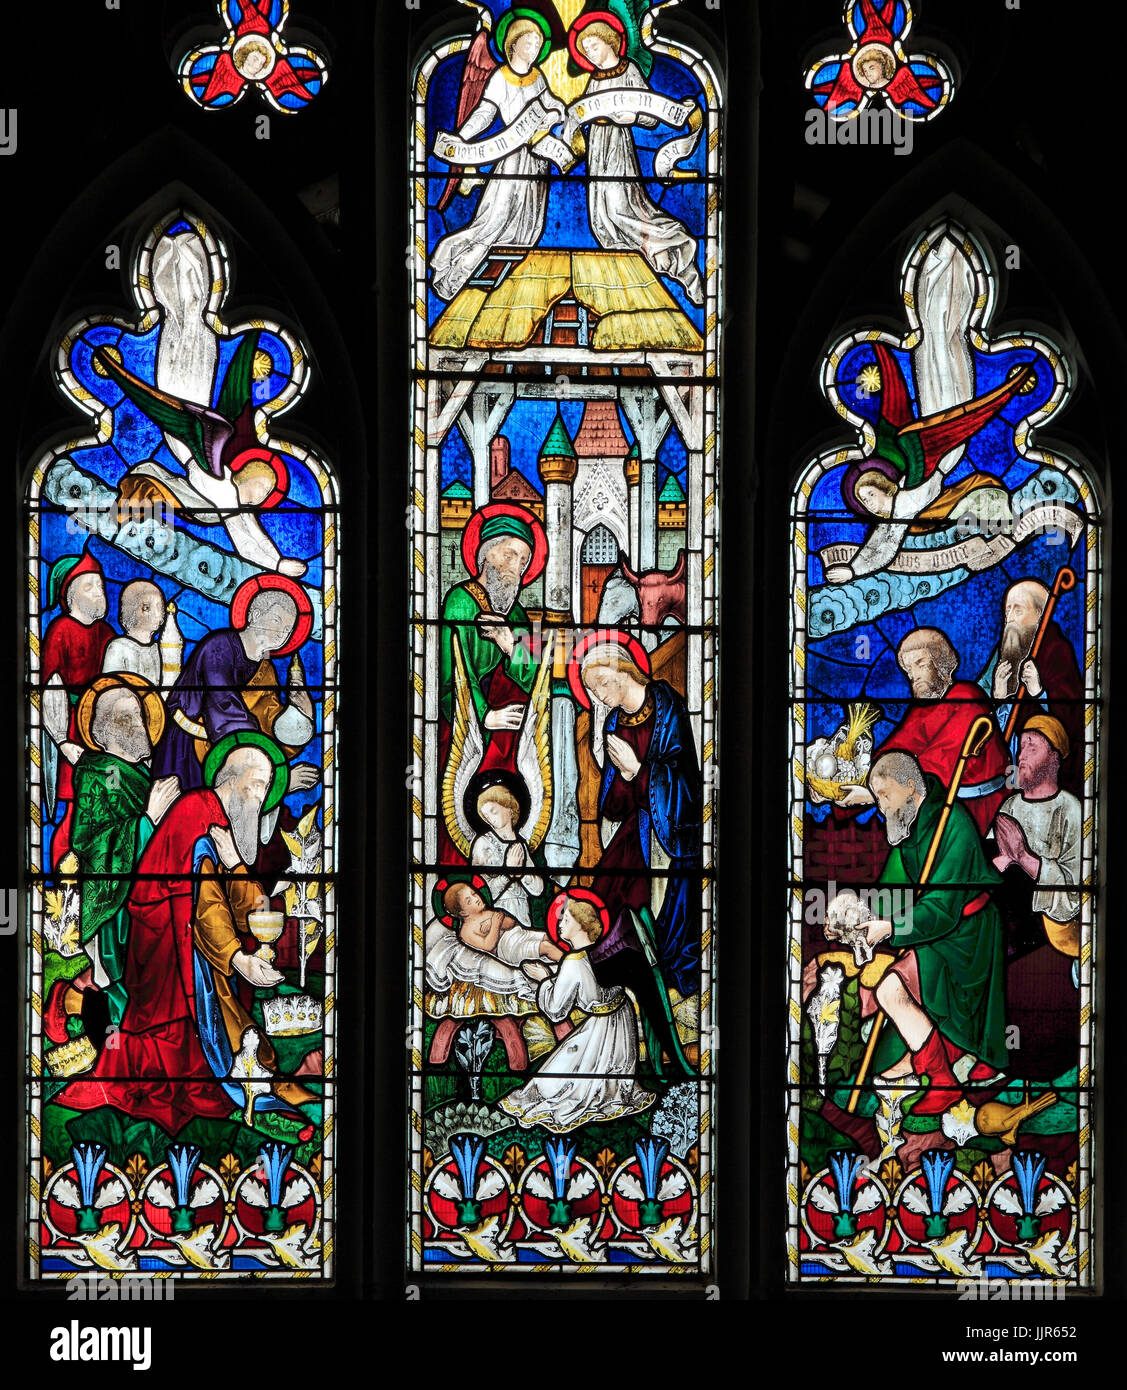 Nativity, stained glass window, by J. Hardman & Co, the Magi, Shepherds, infant baby Jesus, stable, Hillington, - Stock Image